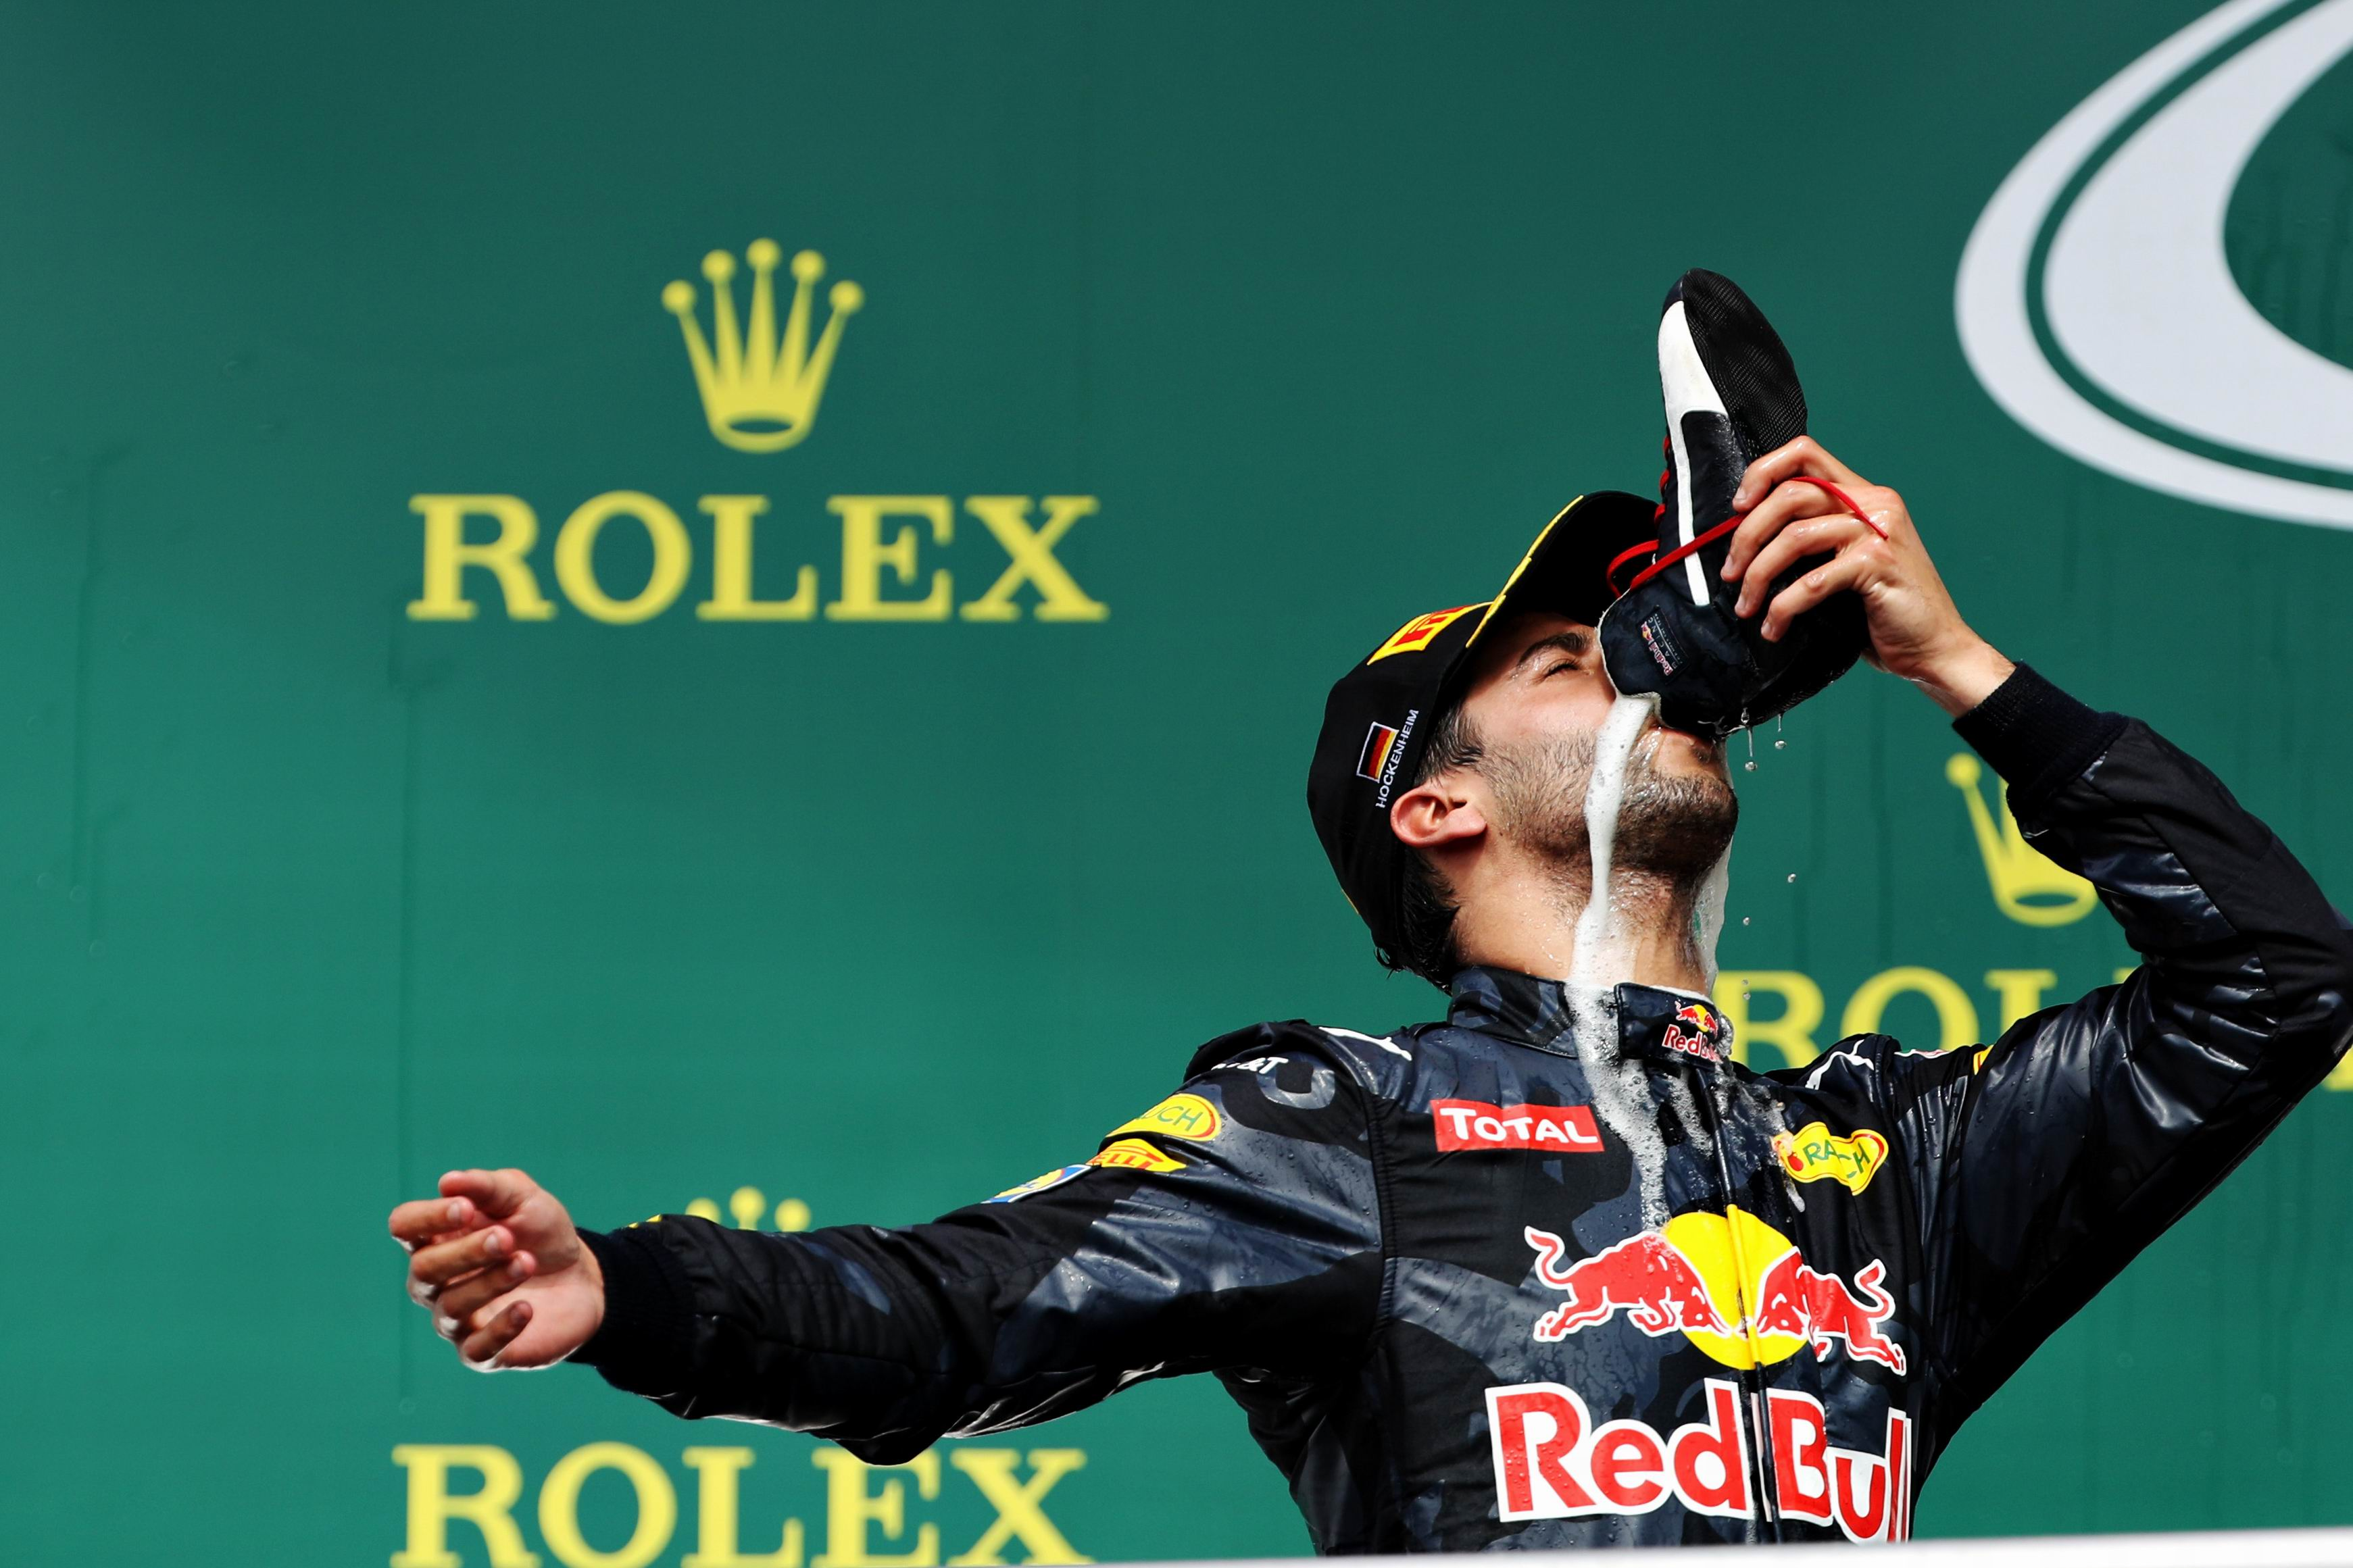 Daniel Ricciardo celebrates his 2nd place on the podium during the Formula One Grand Prix of Germany .  Picture: Mark Thompson/Getty Images